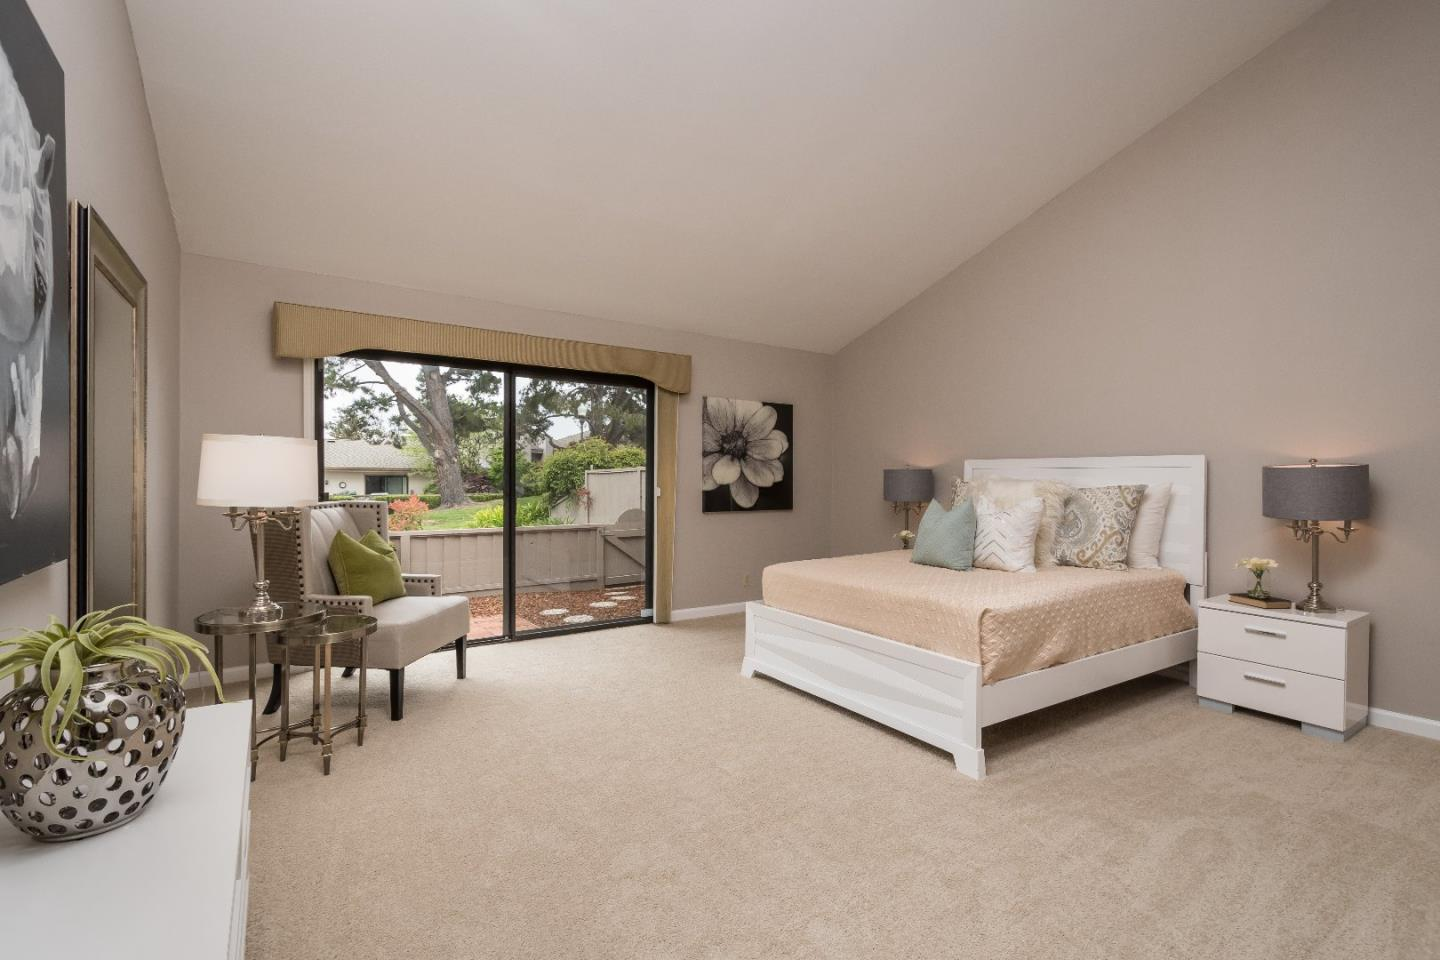 Additional photo for property listing at 971 De Soto Ln  FOSTER CITY, CALIFORNIA 94404